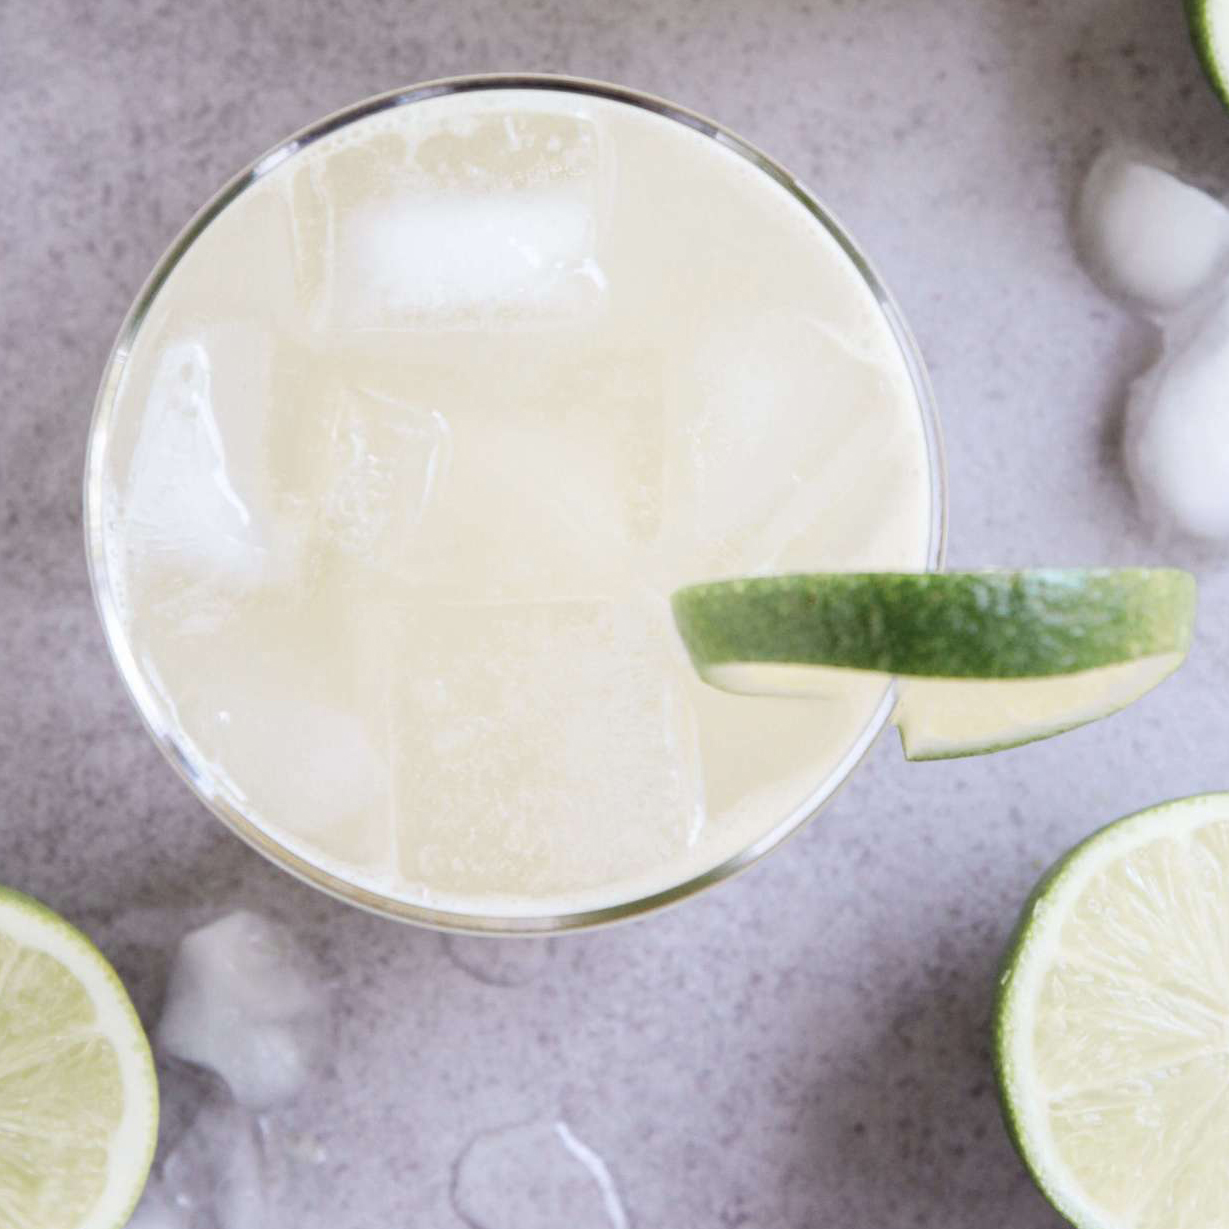 Celebrate #NationalMargaritaDay without the guilt